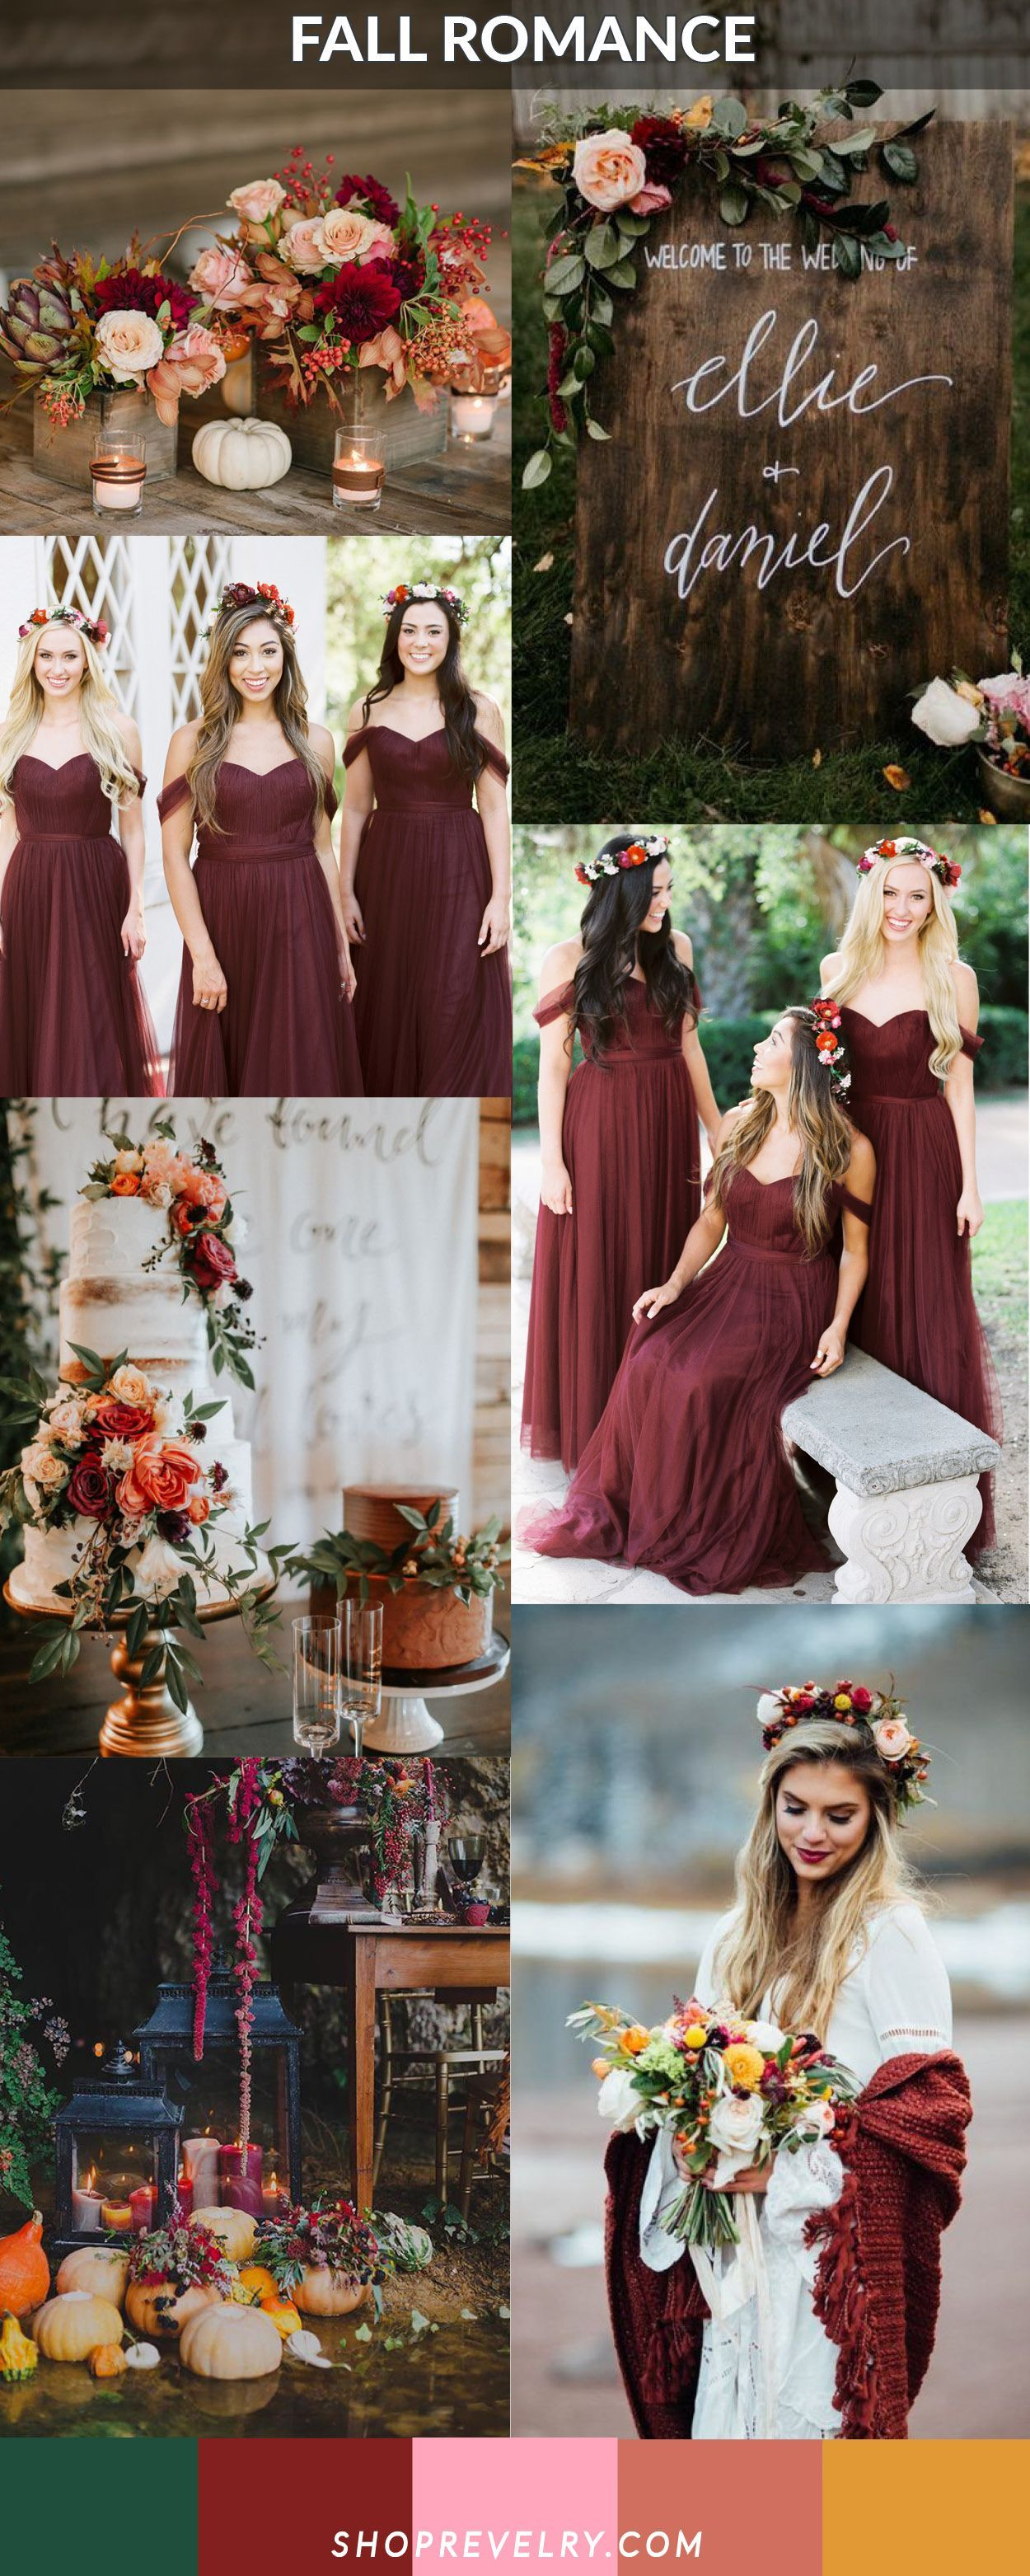 Fall romance cabernet muted peach forest green and mustard color